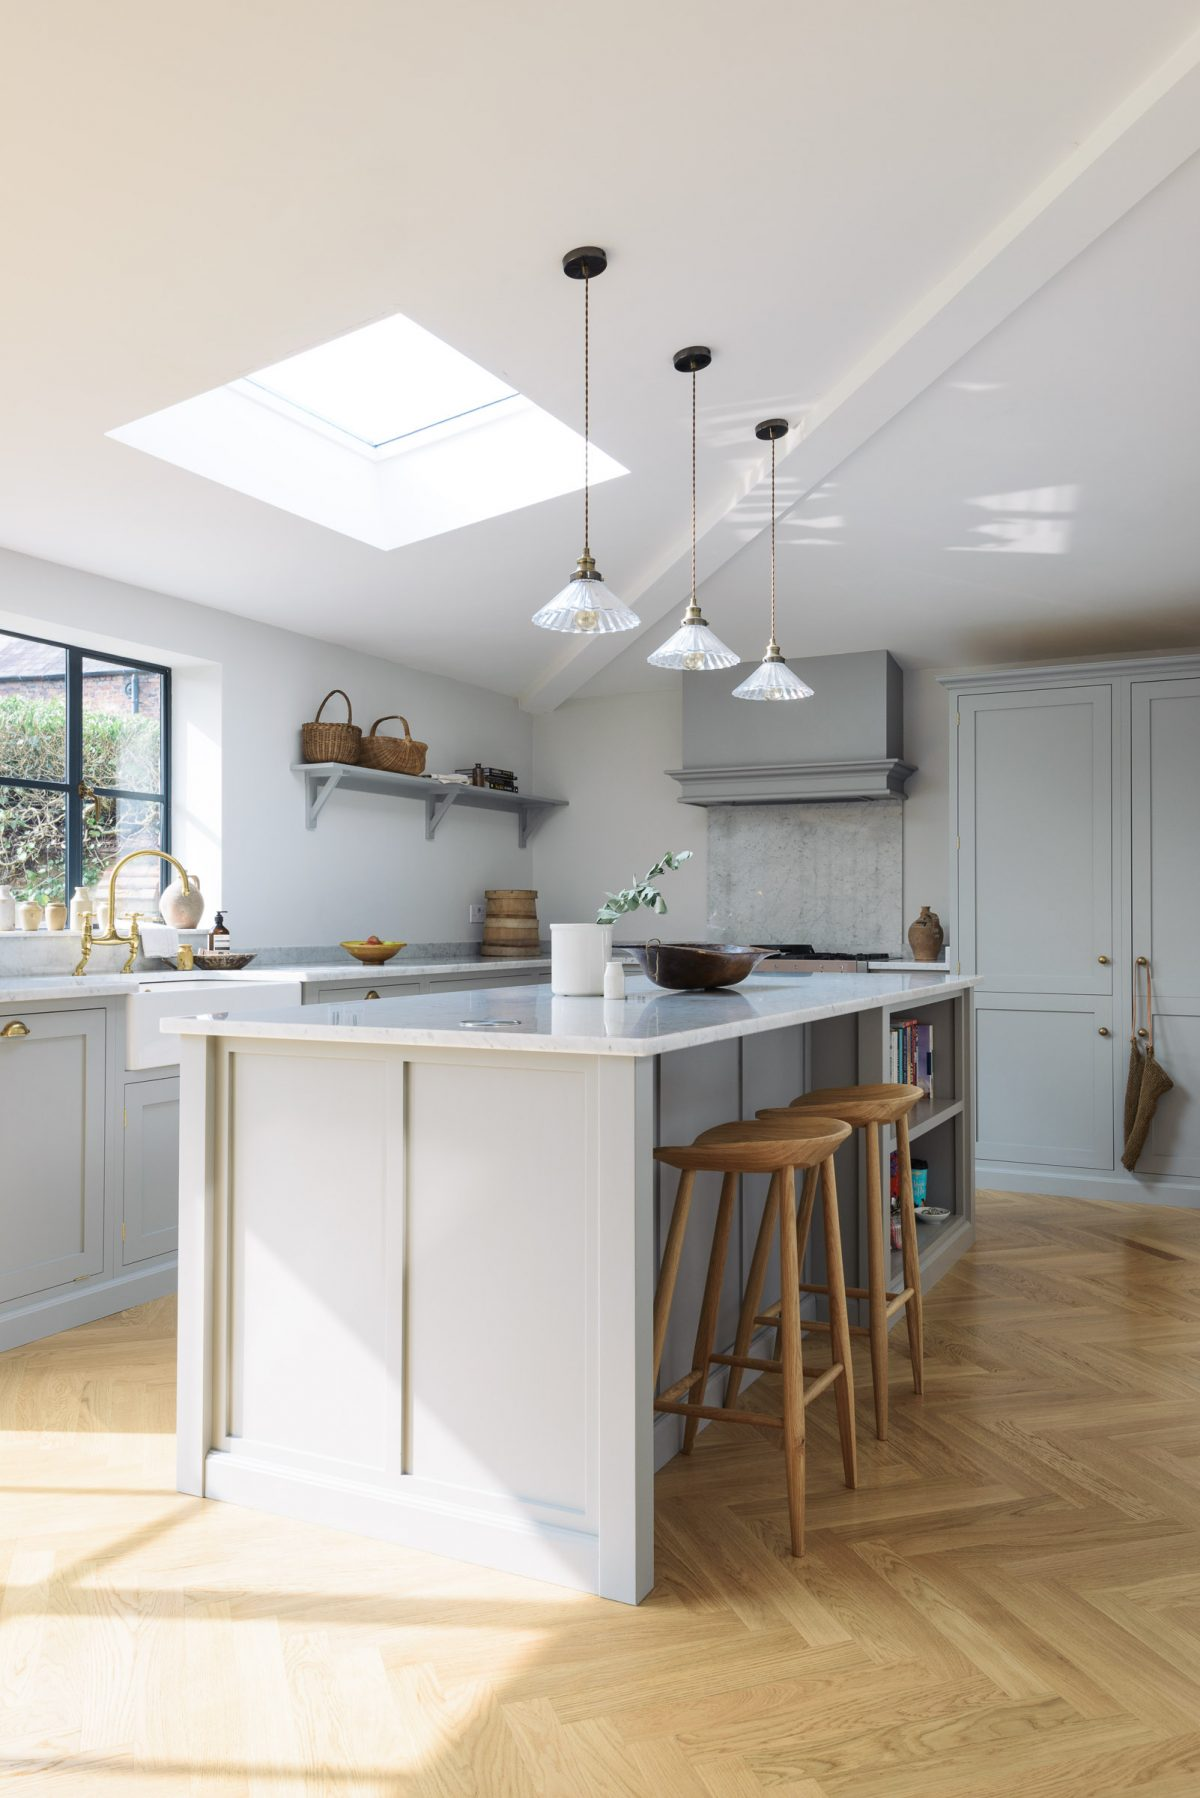 A perfect Kitchen Island - The deVOL Journal - deVOL Kitchens